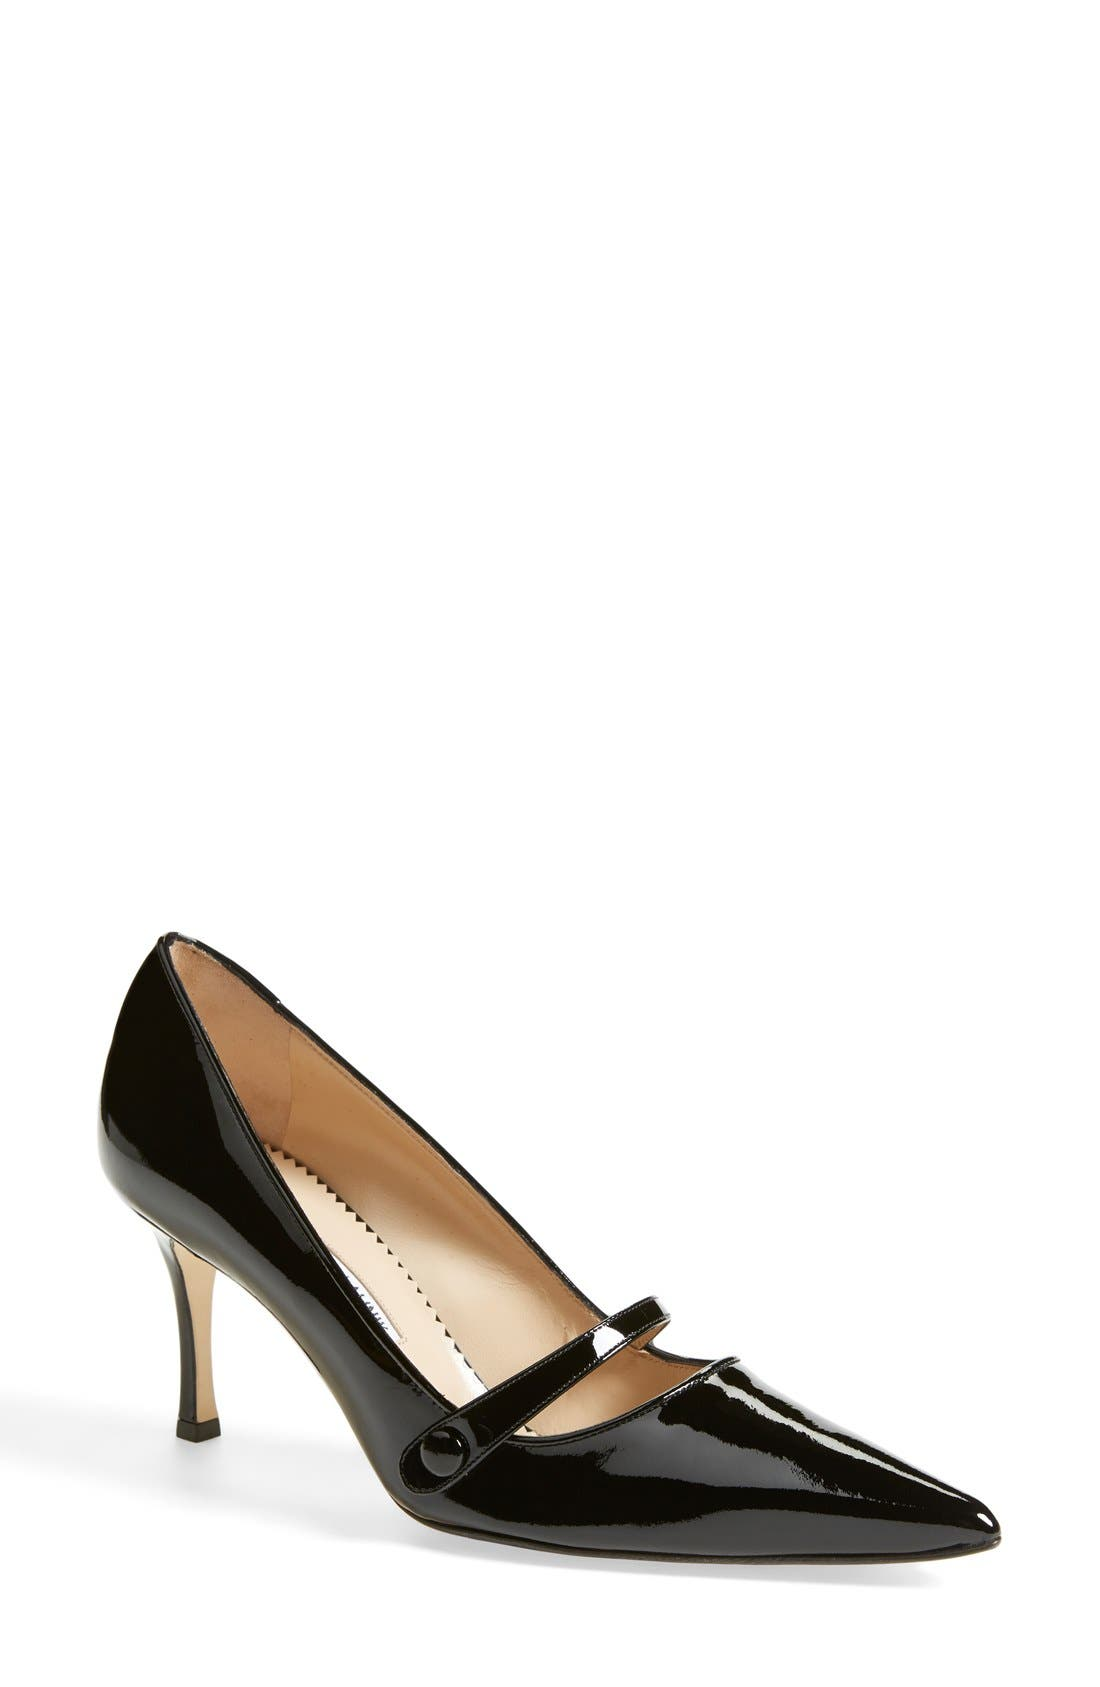 Alternate Image 1 Selected - Manolo Blahnik 'Mladari' Mary Jane Pump (Women)